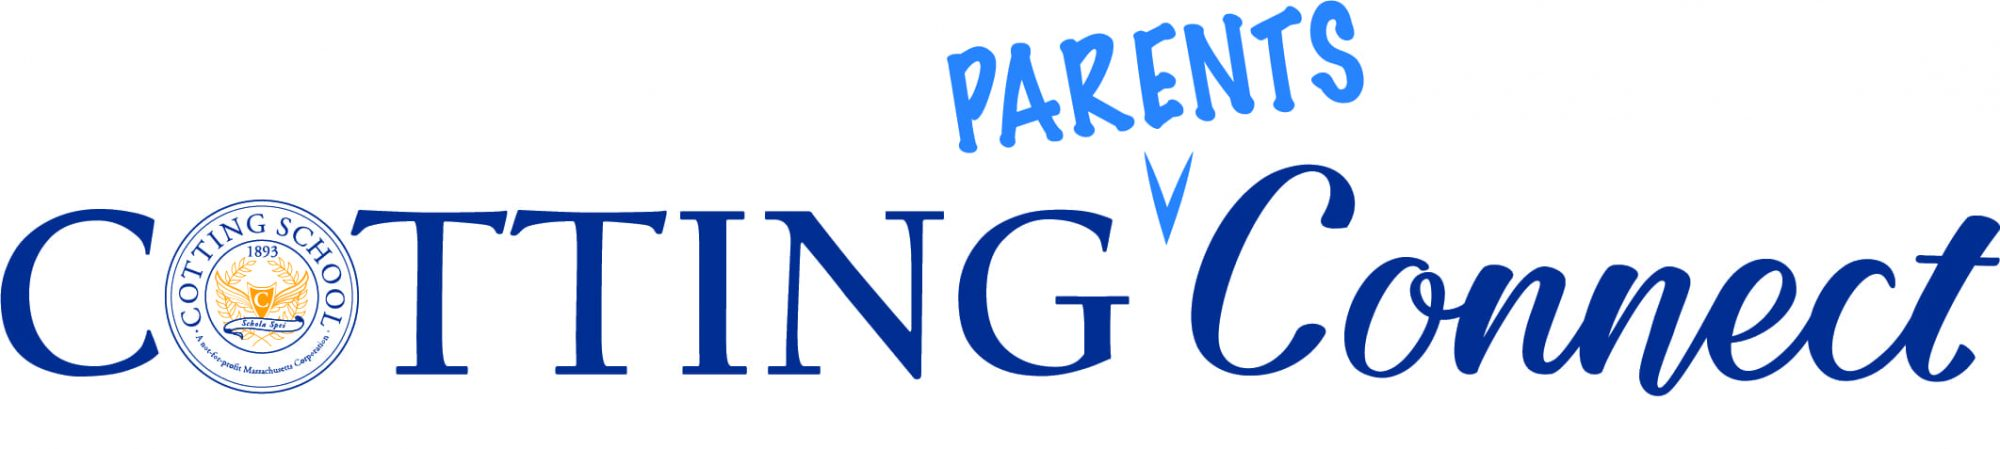 Cotting Parents Connect Logo